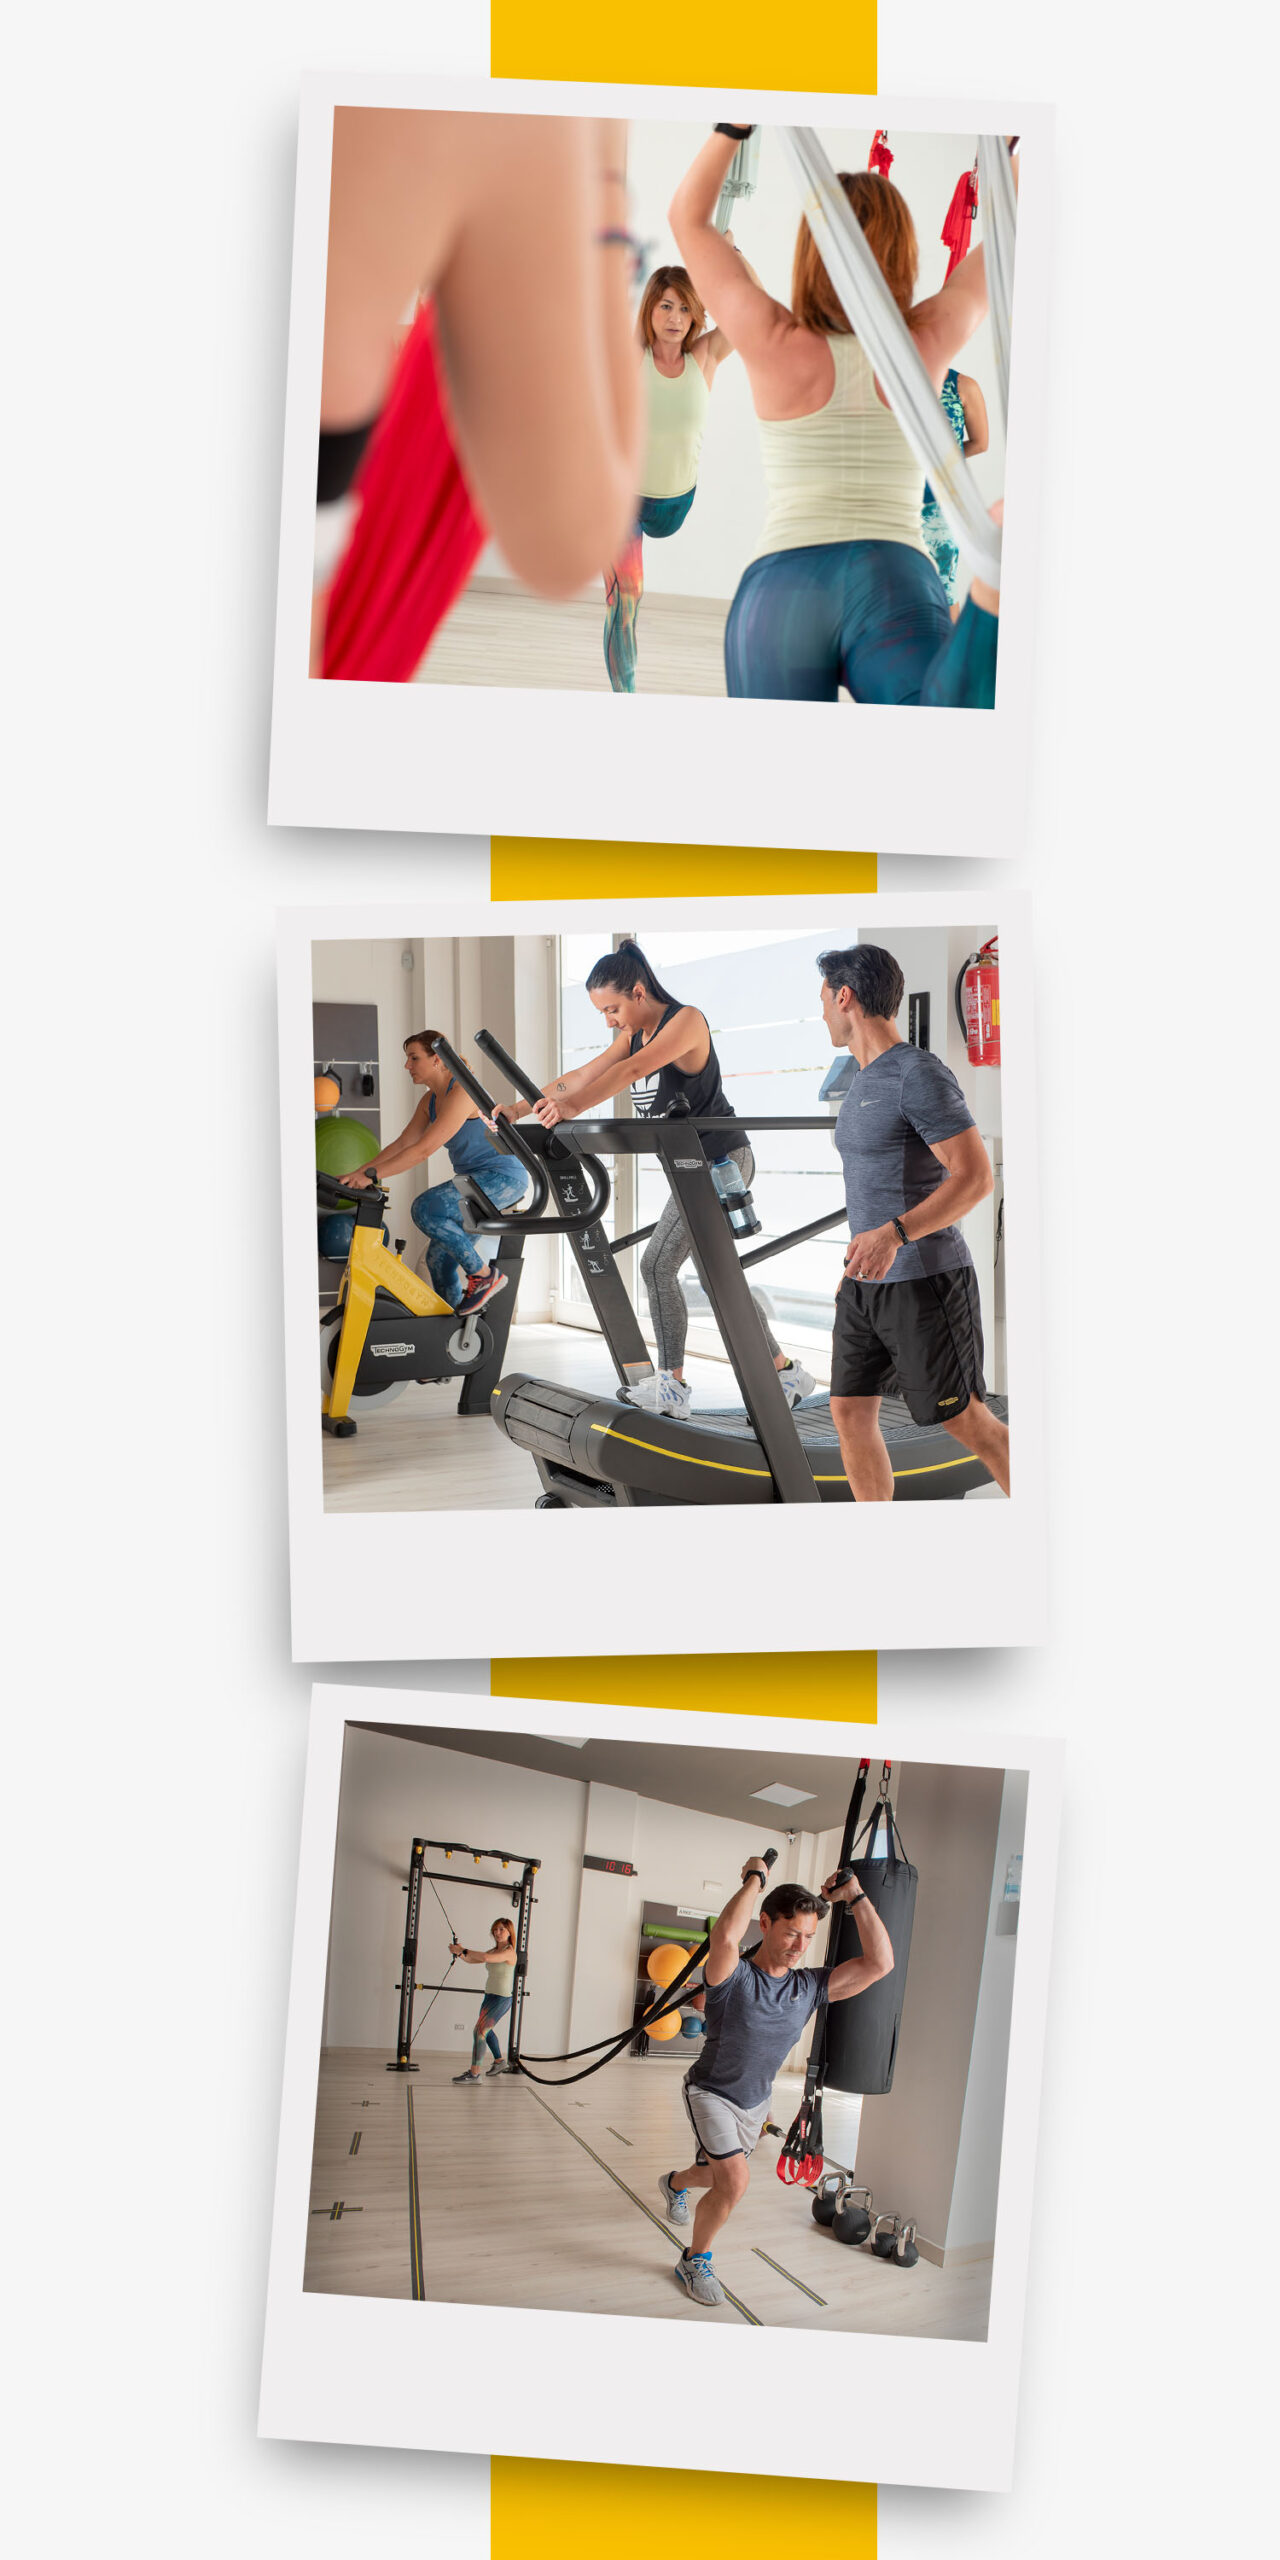 Pilates & Functional Training